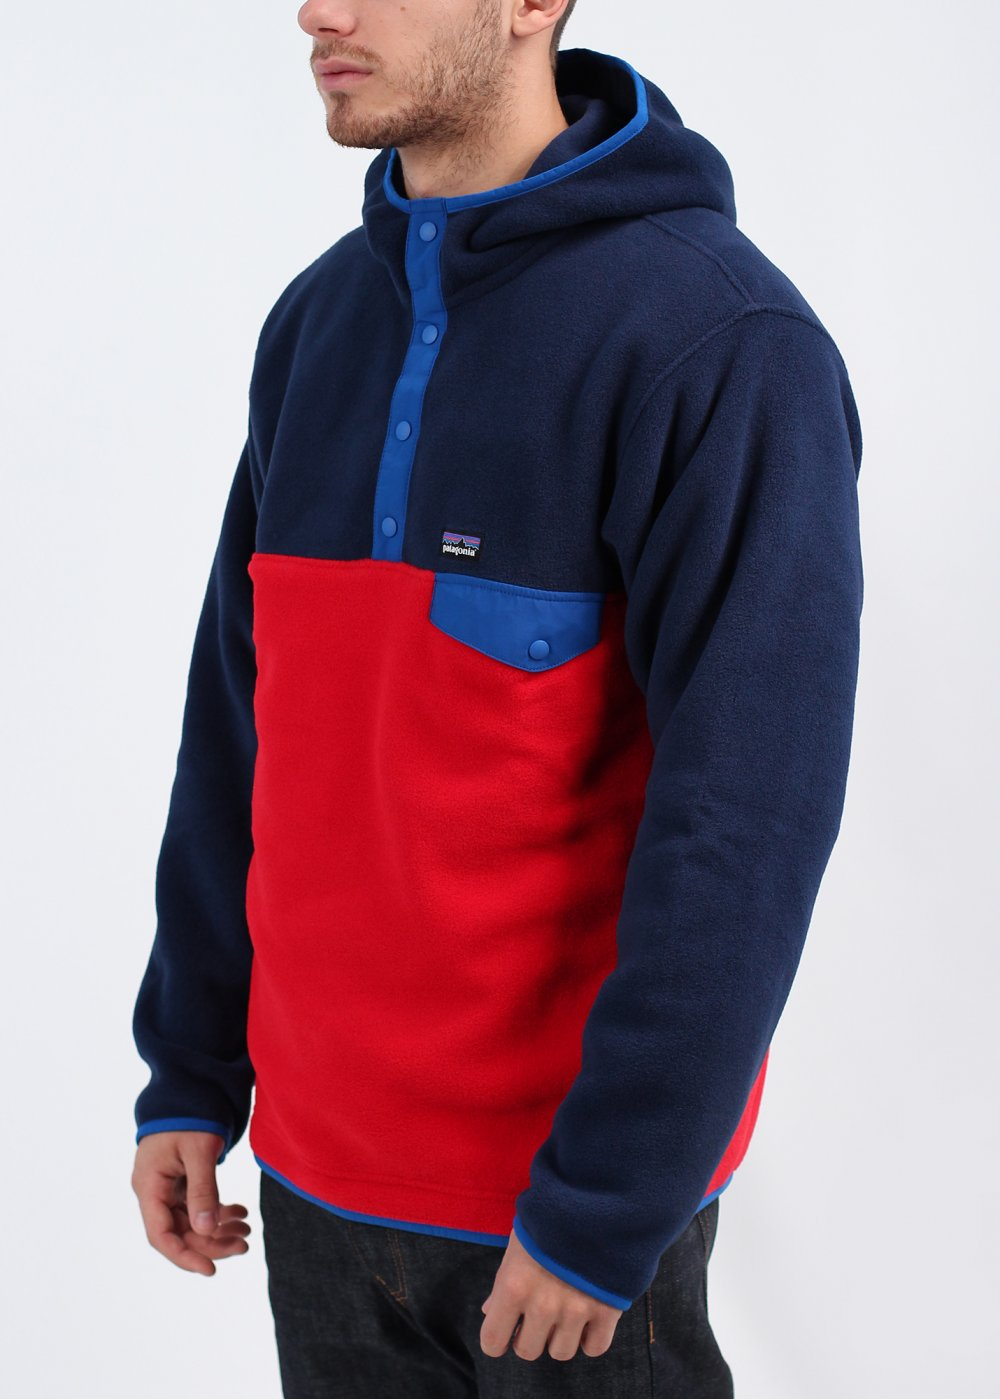 Patagonia Synchilla Lightweight Snap T | Patagonia Snap-t Pullover | Patagonia Synchilla